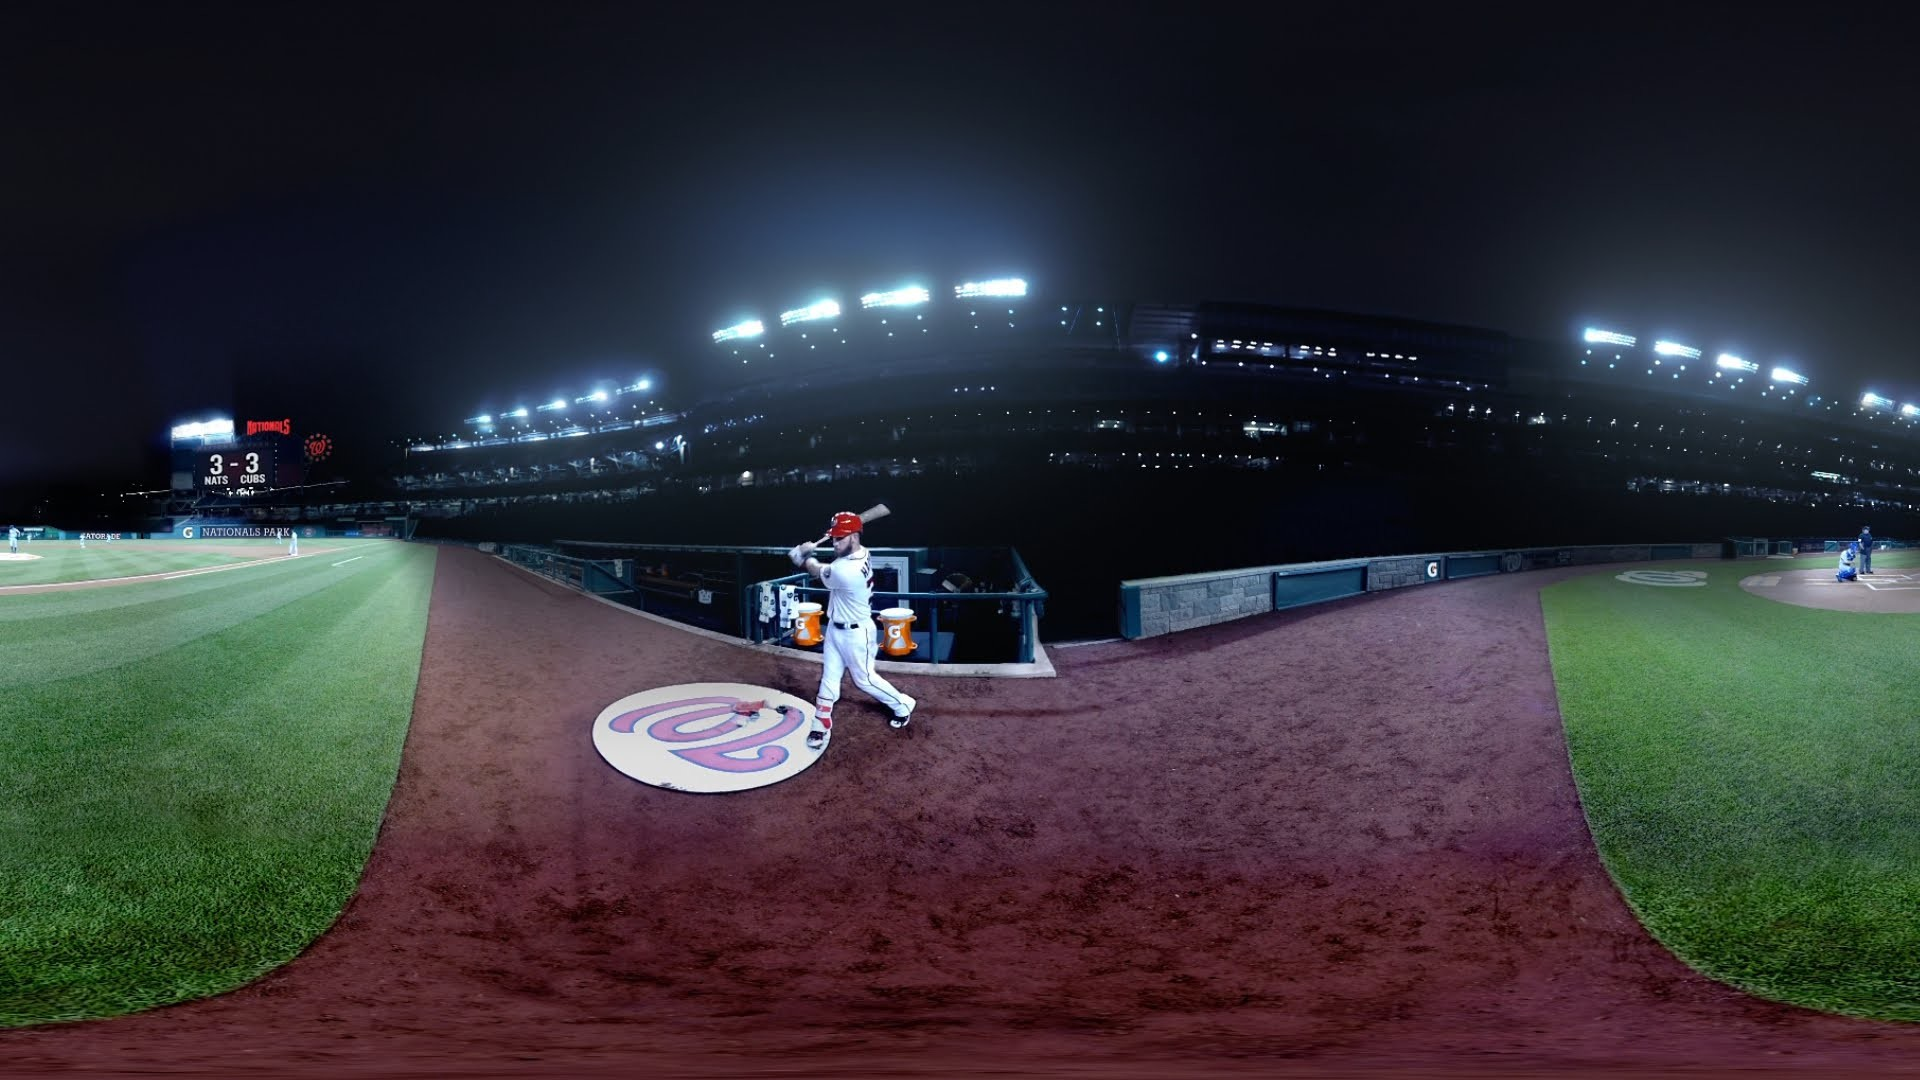 Behind the Scenes: Gatorade – Bryce Harper Virtual Reality Experience